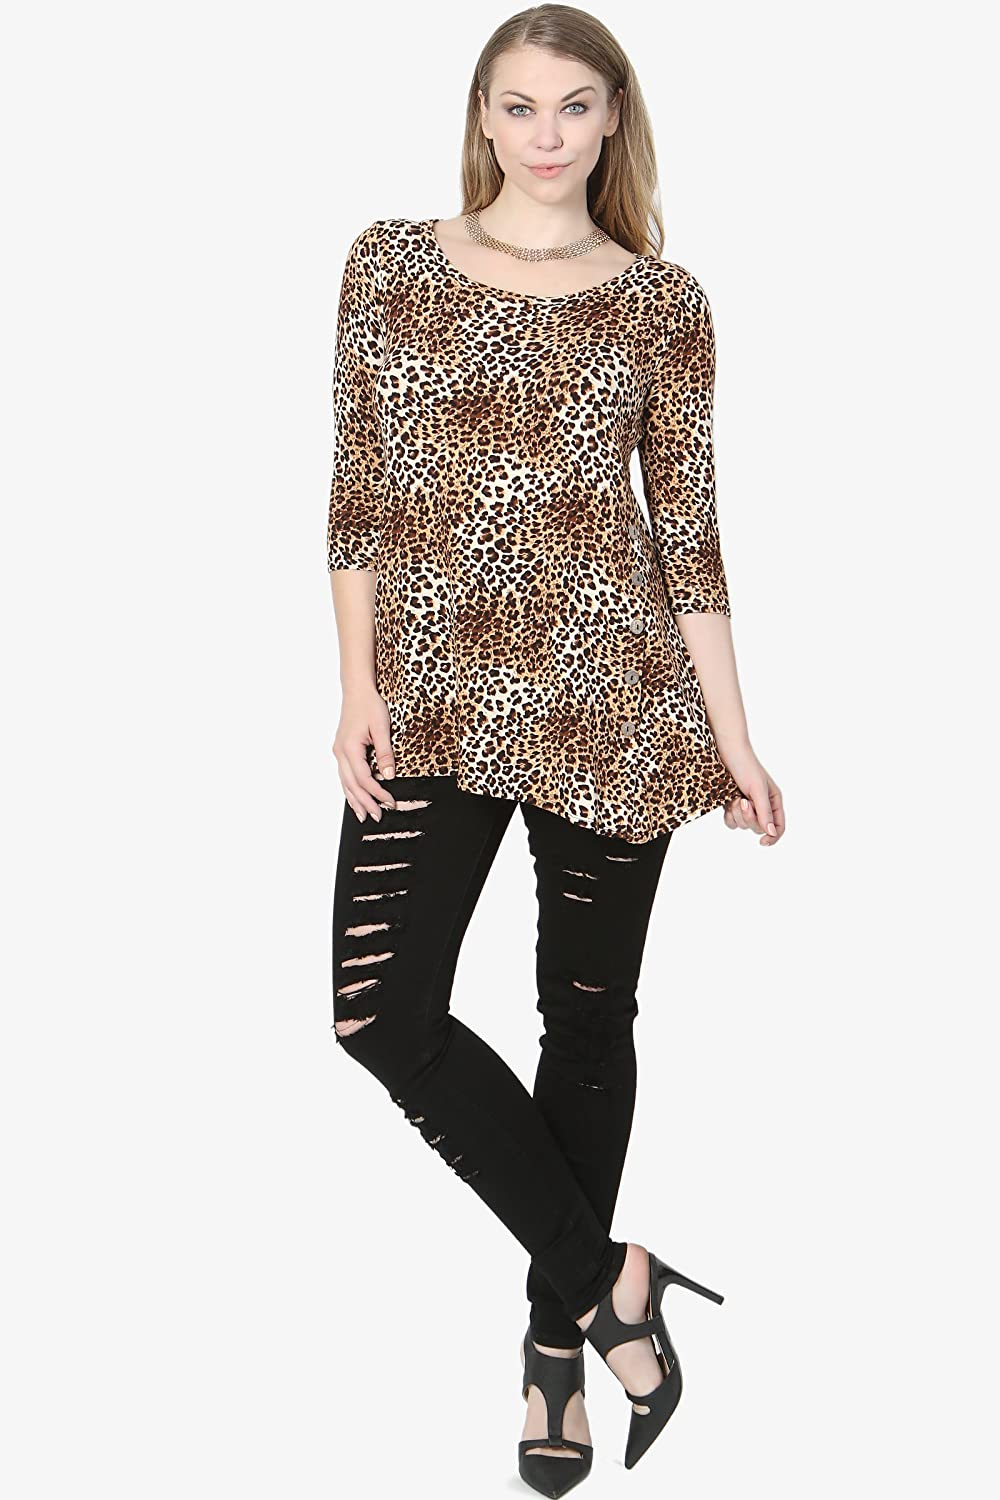 TheMogan Curve Leopard Print Jersey Button Accent 3//4 Sleeve Tunic Top